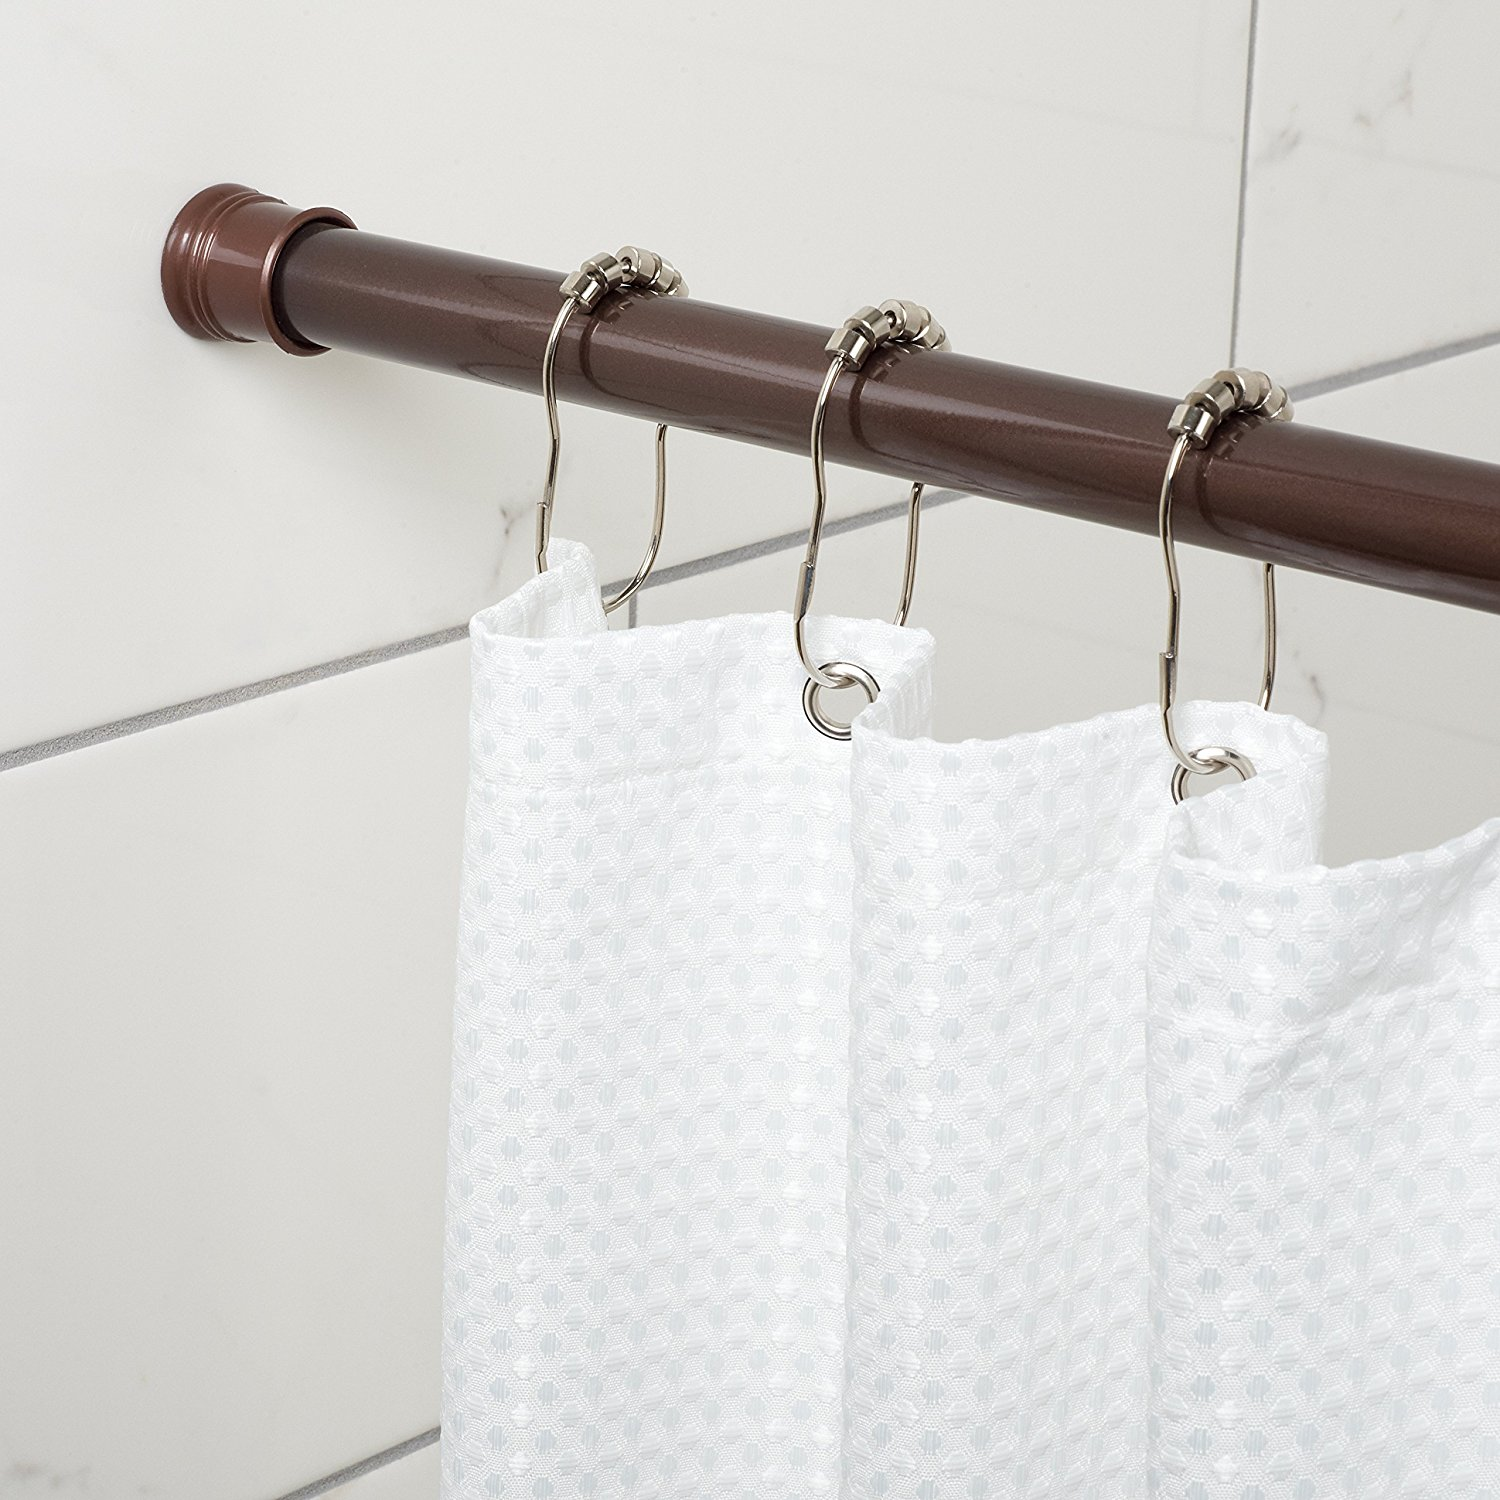 Exciting Bathroom Decor Ideas with Shower Curtain Tension Rod: Bathroom Shower Curtain Rods | Shower Curtain Tension Rod | Shower Rod Extension